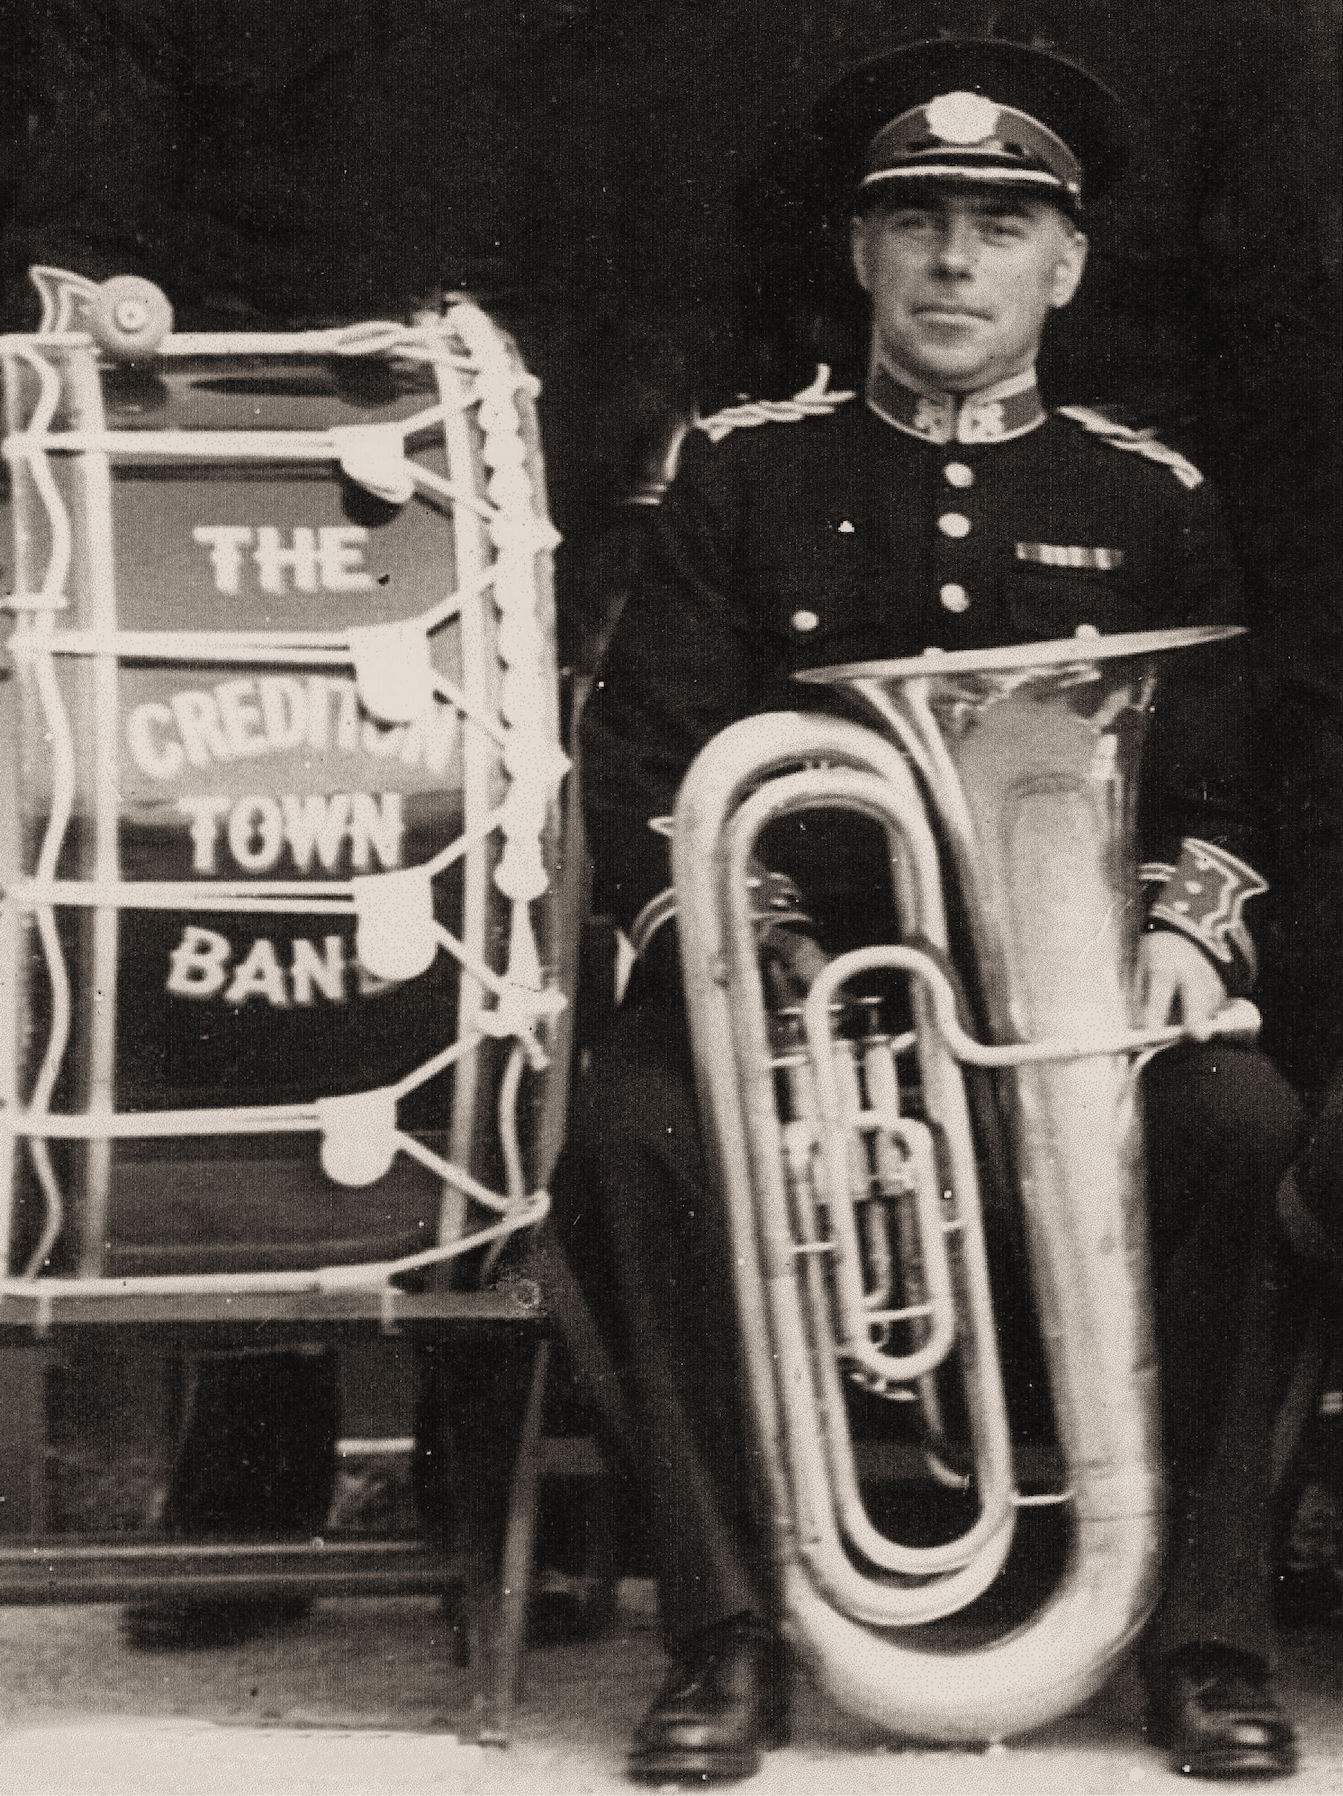 Tuba player and Drum from IBEW website